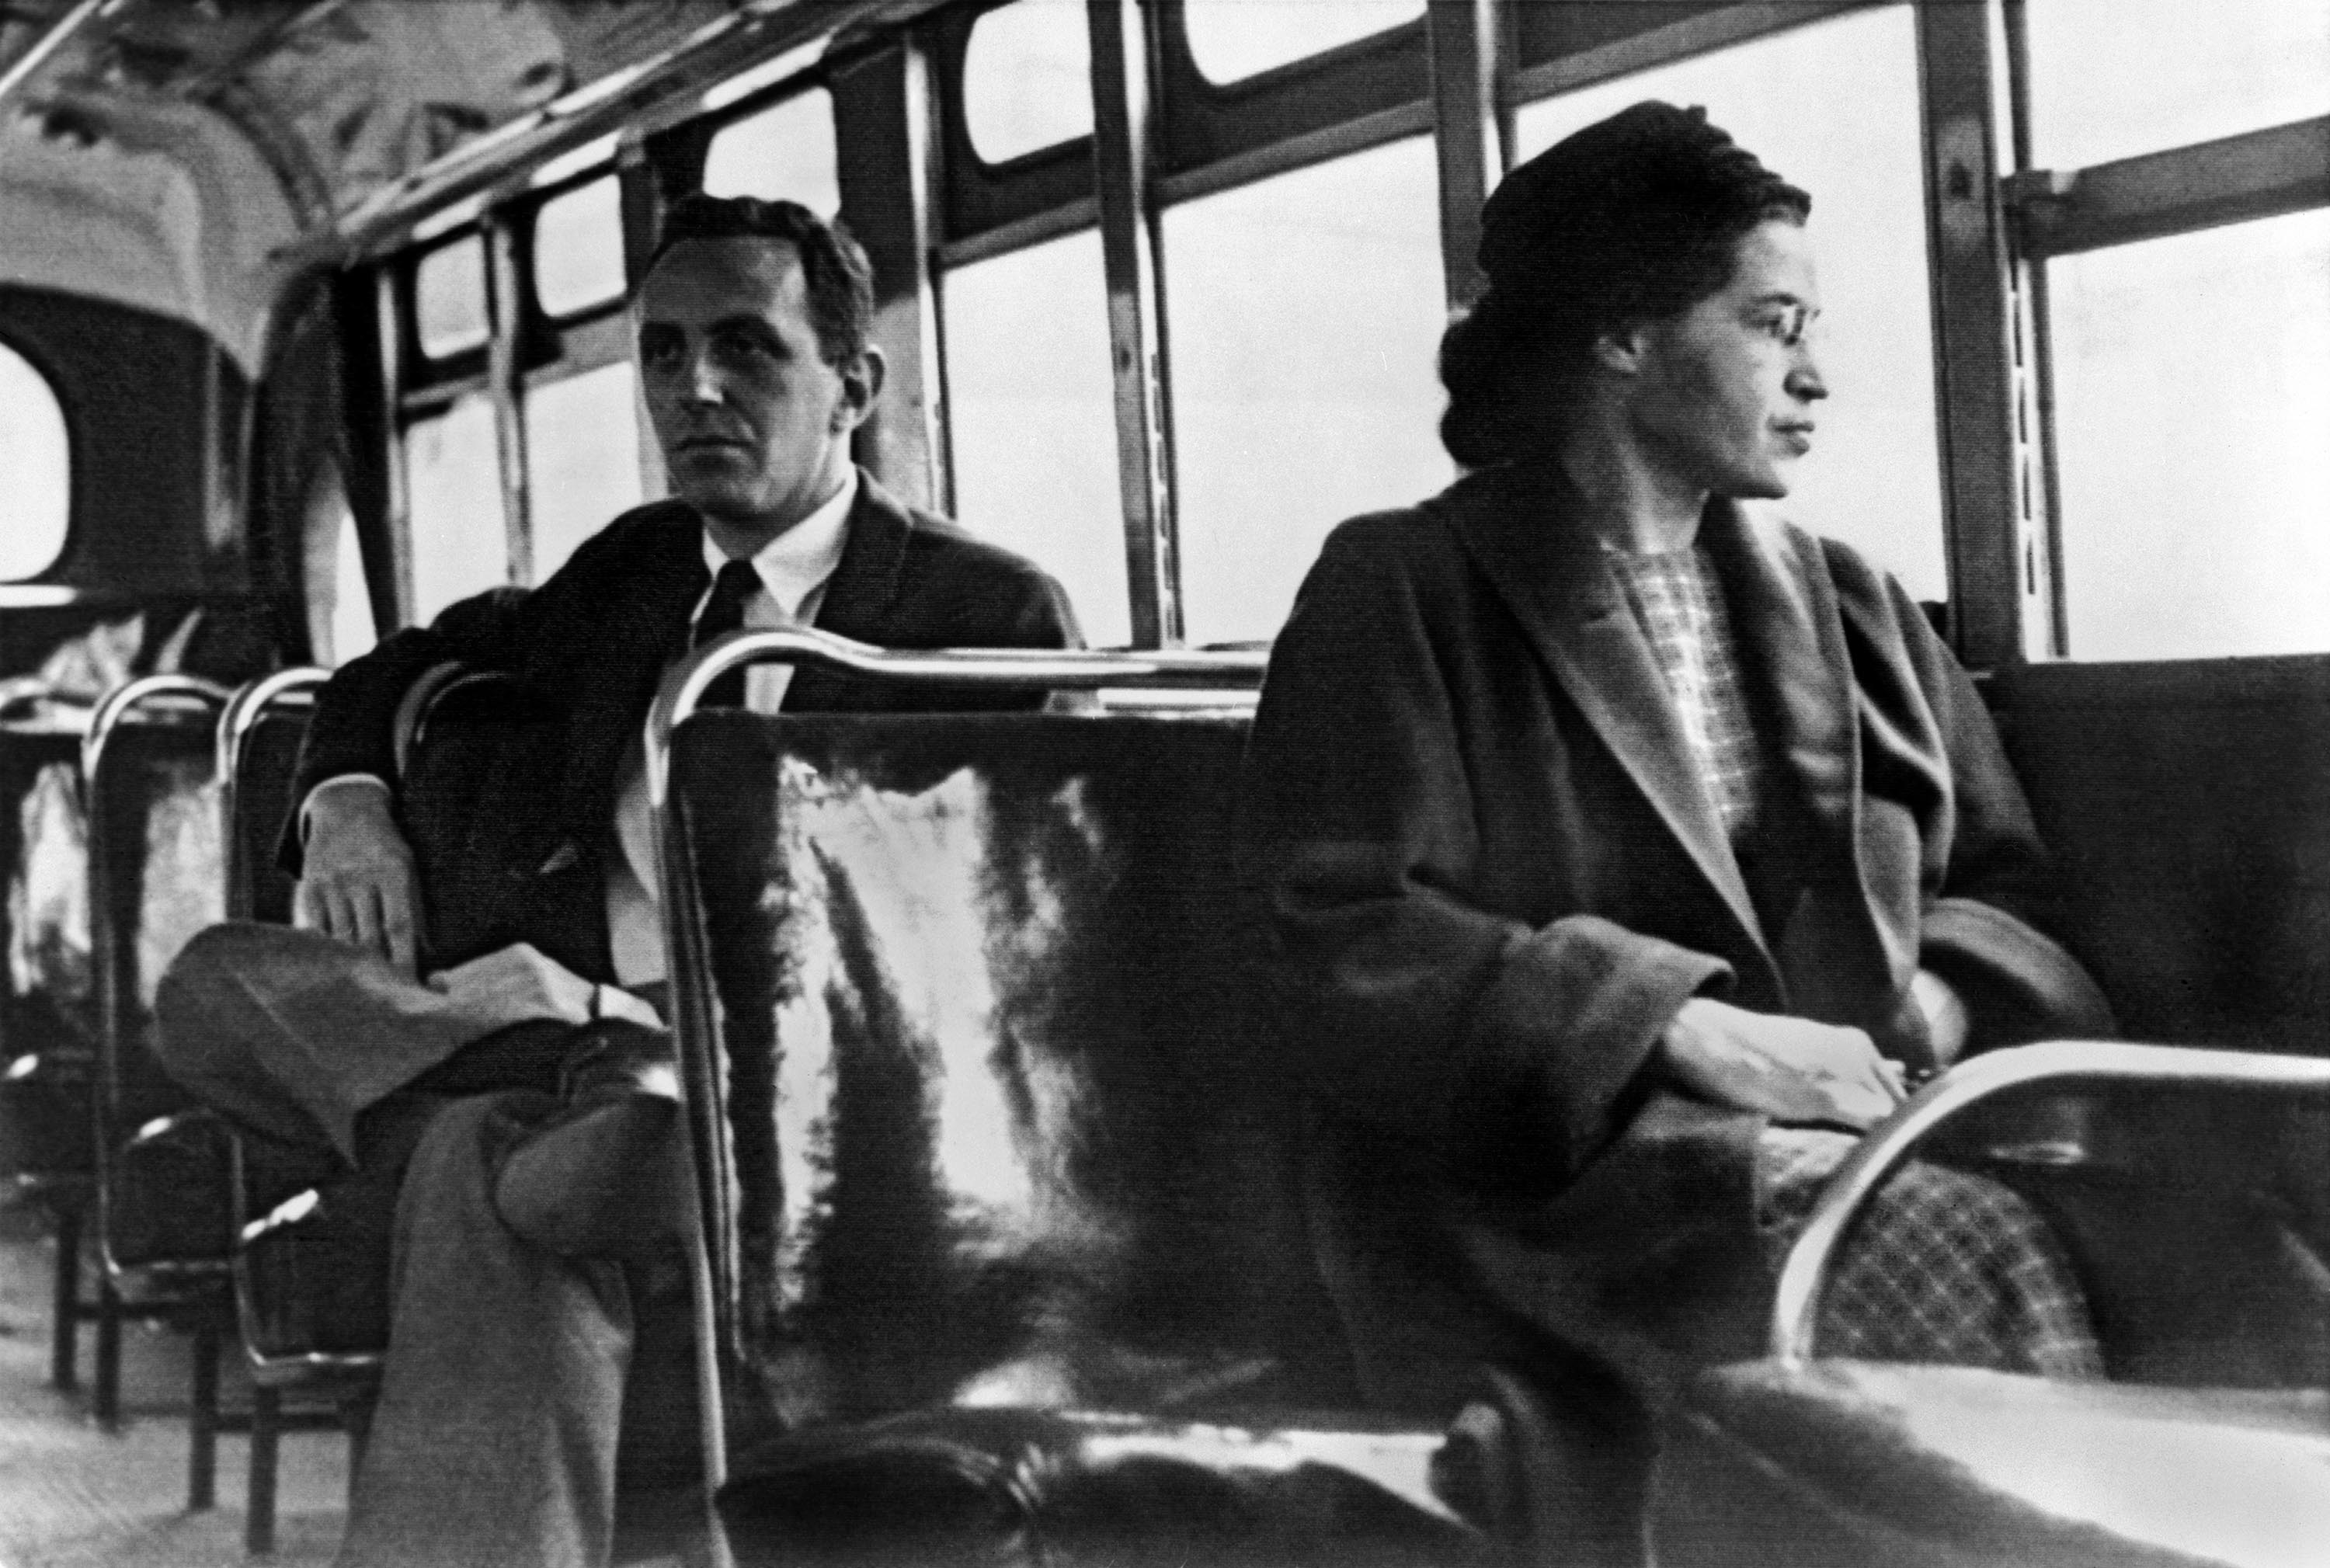 65 years ago today, Rosa Parks stood up for civil rights by sitting down